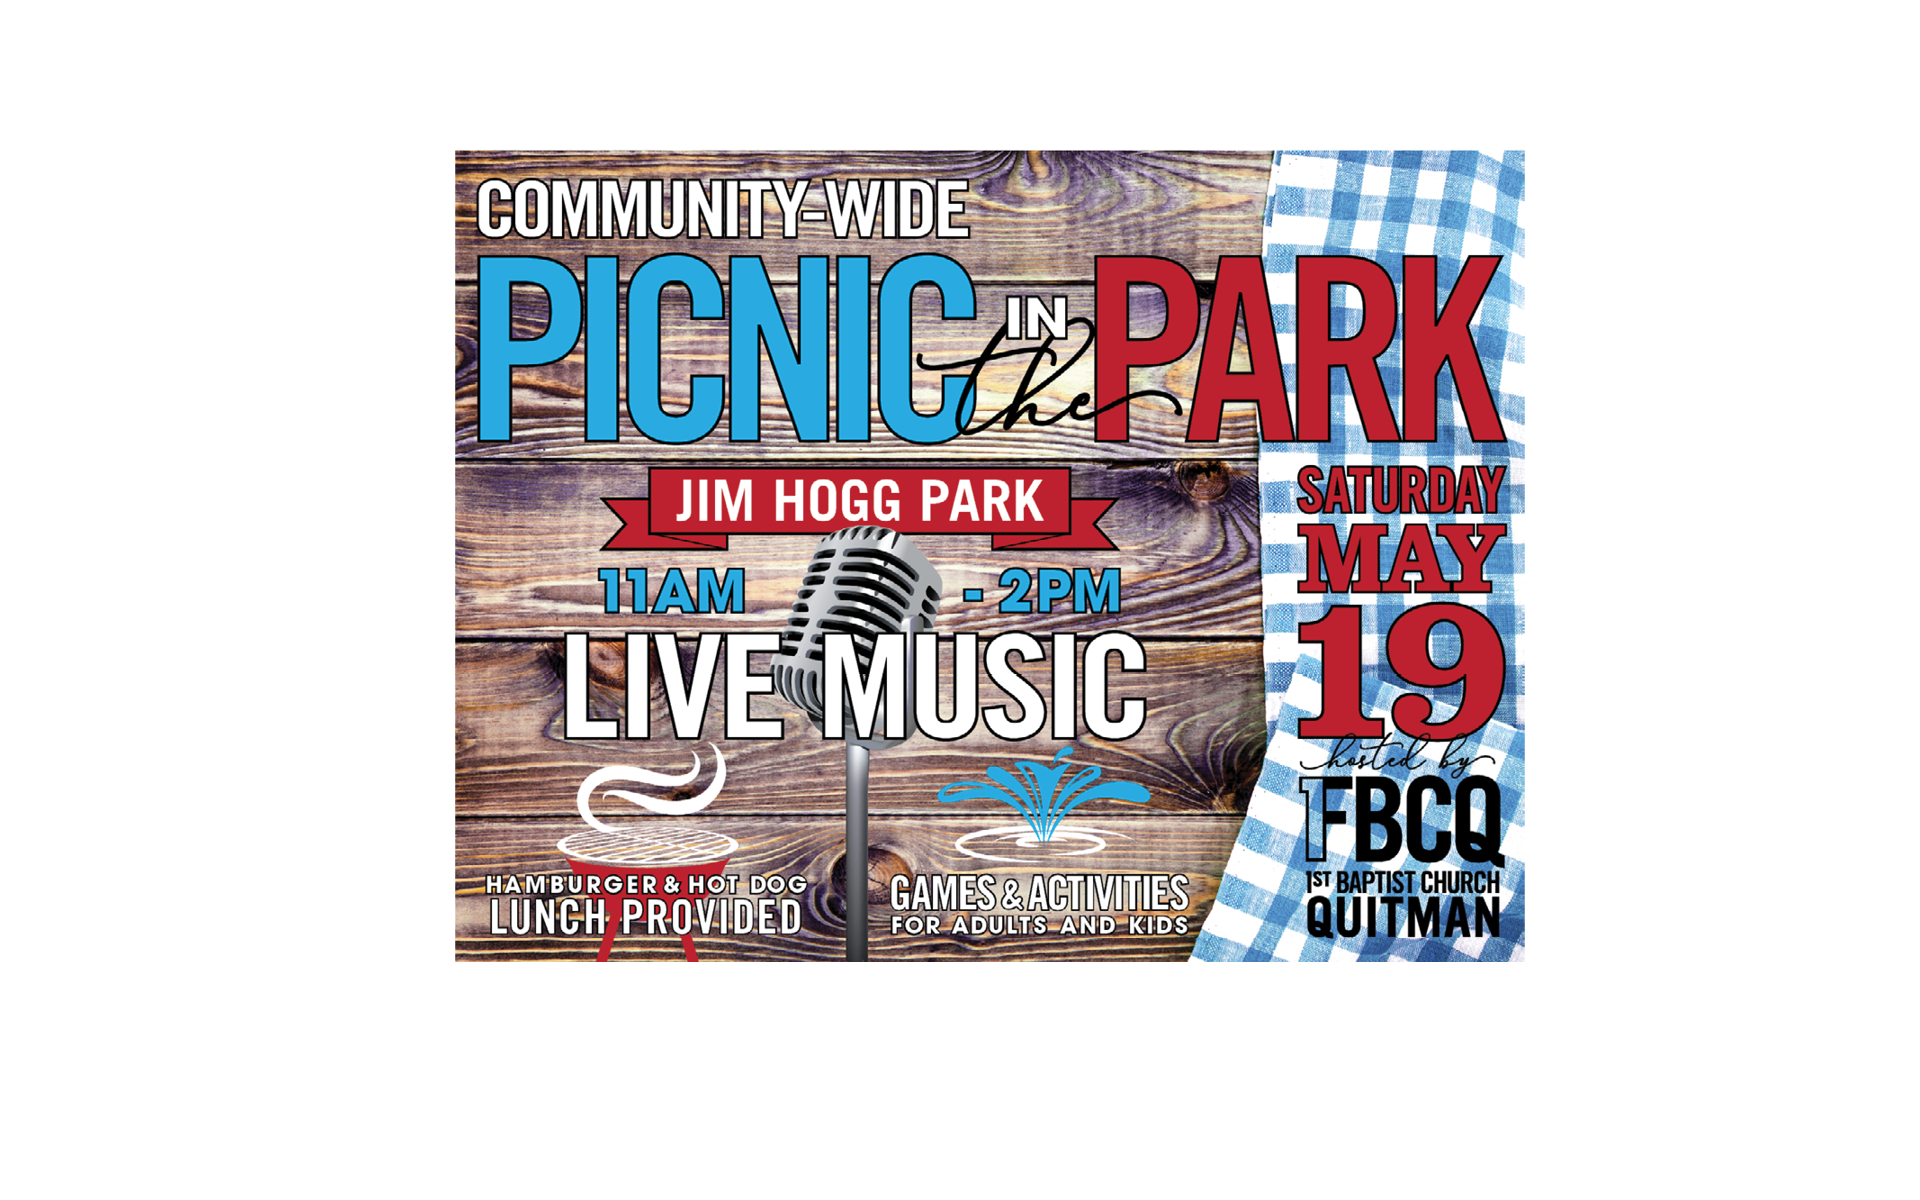 PICNIC IN THE PARK FLIER